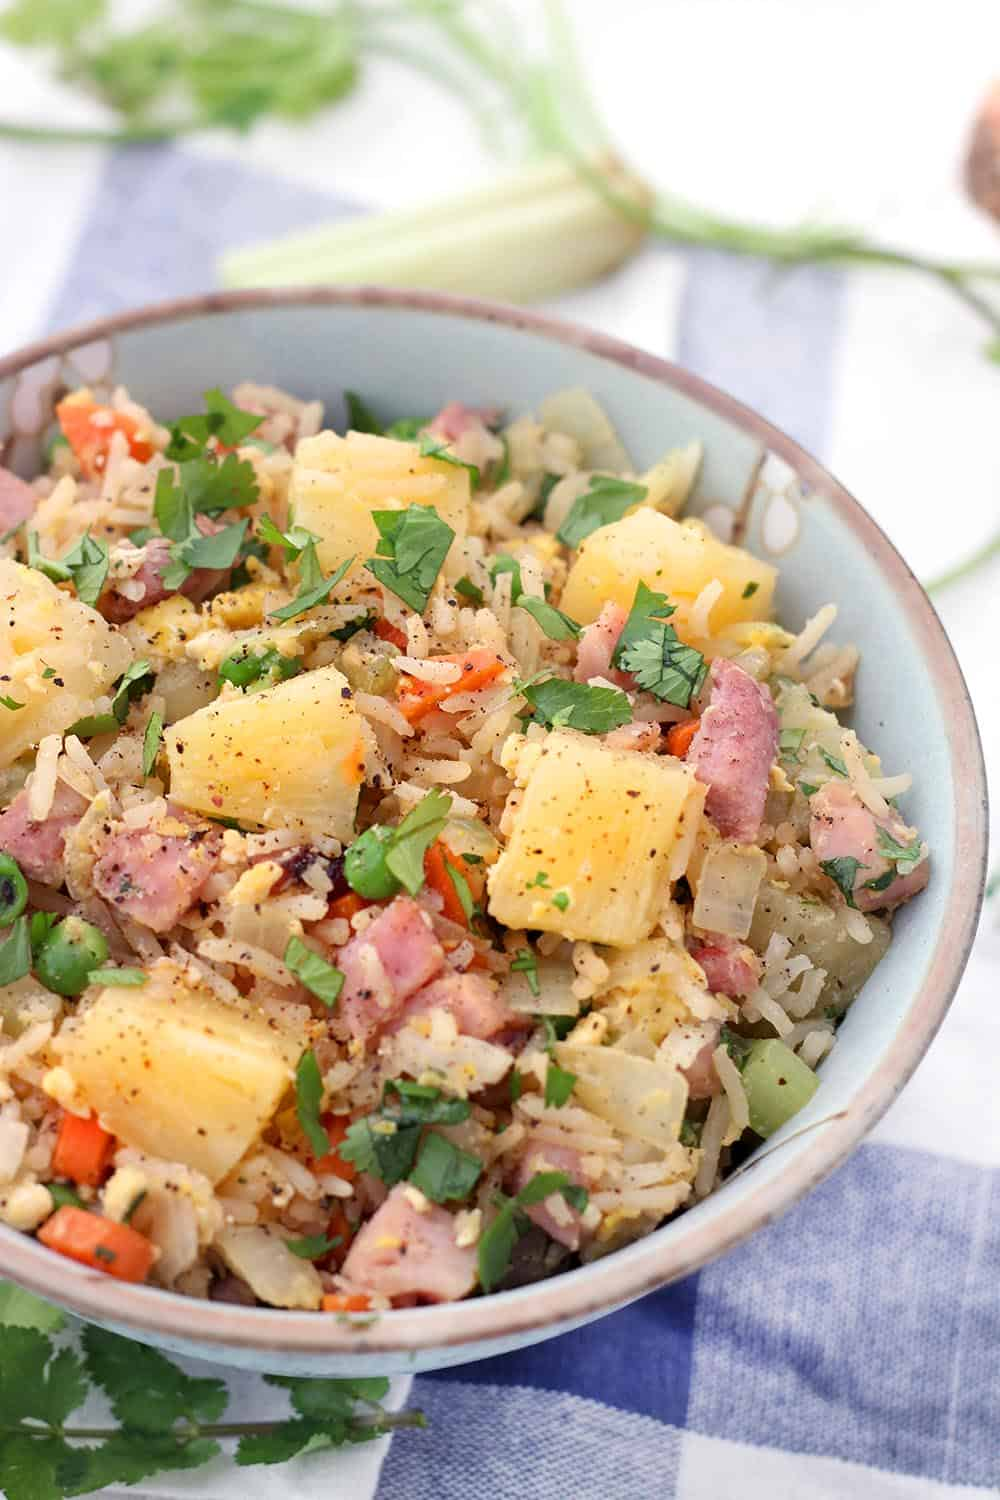 This Pineapple and Ham Fried Rice is a great recipe to use up leftover holiday ham! It only takes 15 minutes, one-pot, and it's easily made gluten-free. #FriedRice #LeftoverHamRecipes #Pineapple #QuickandEasy #15MinuteMeals #GlutenFree